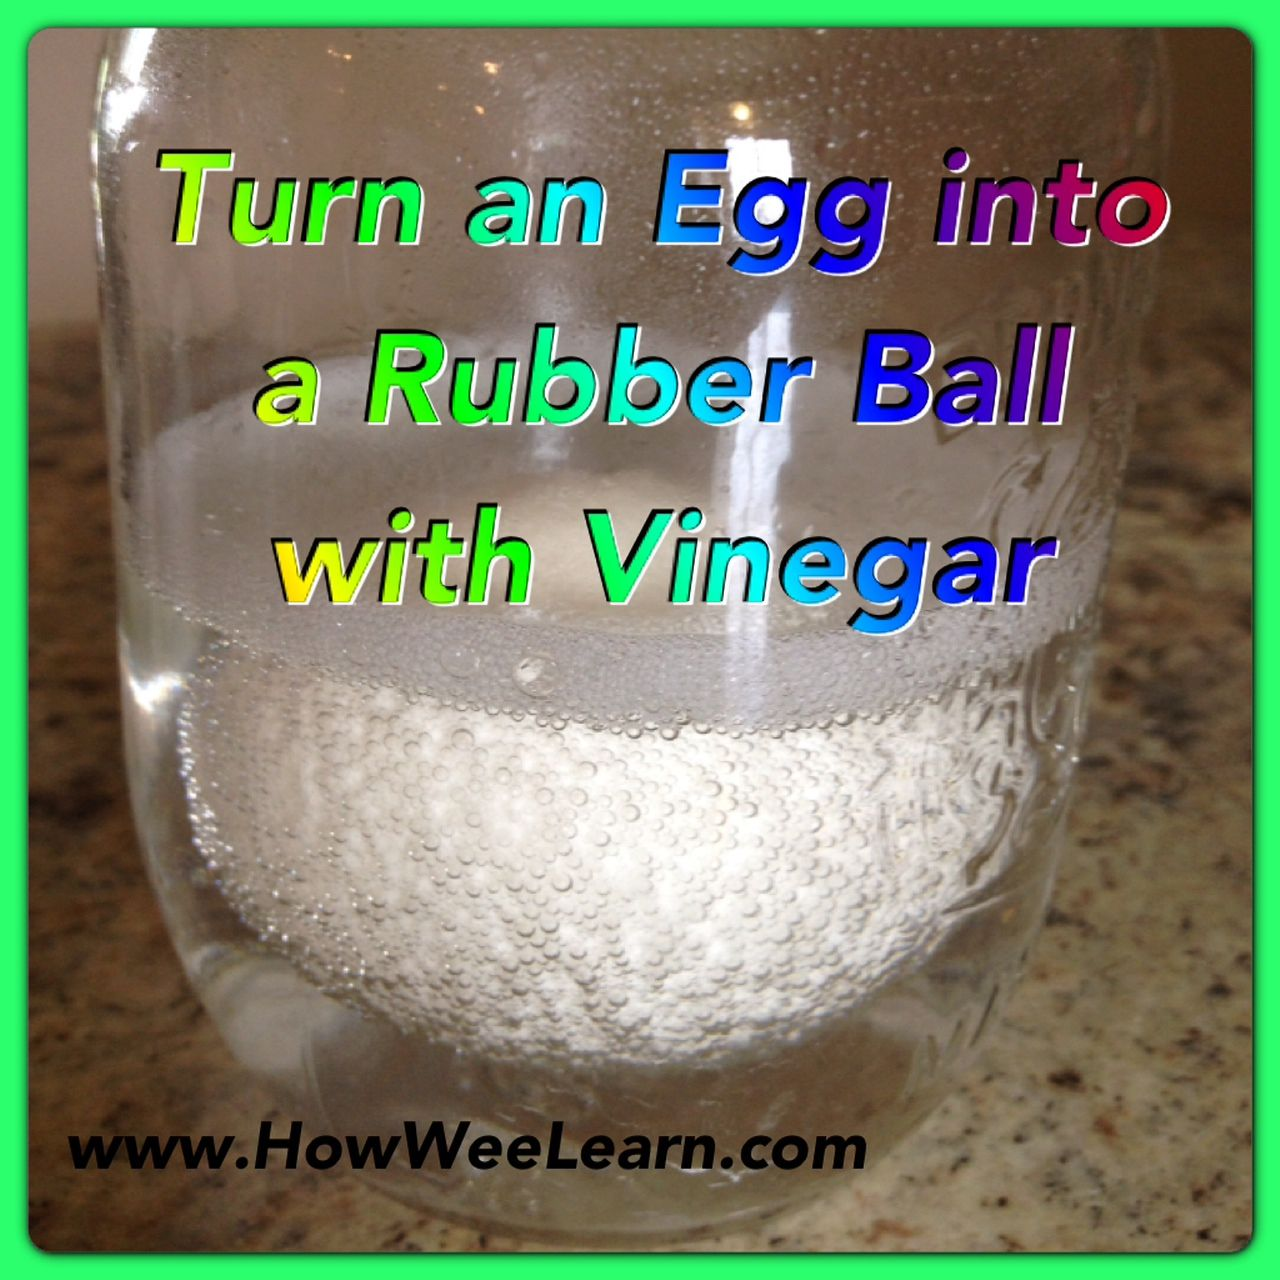 The Rubber Egg